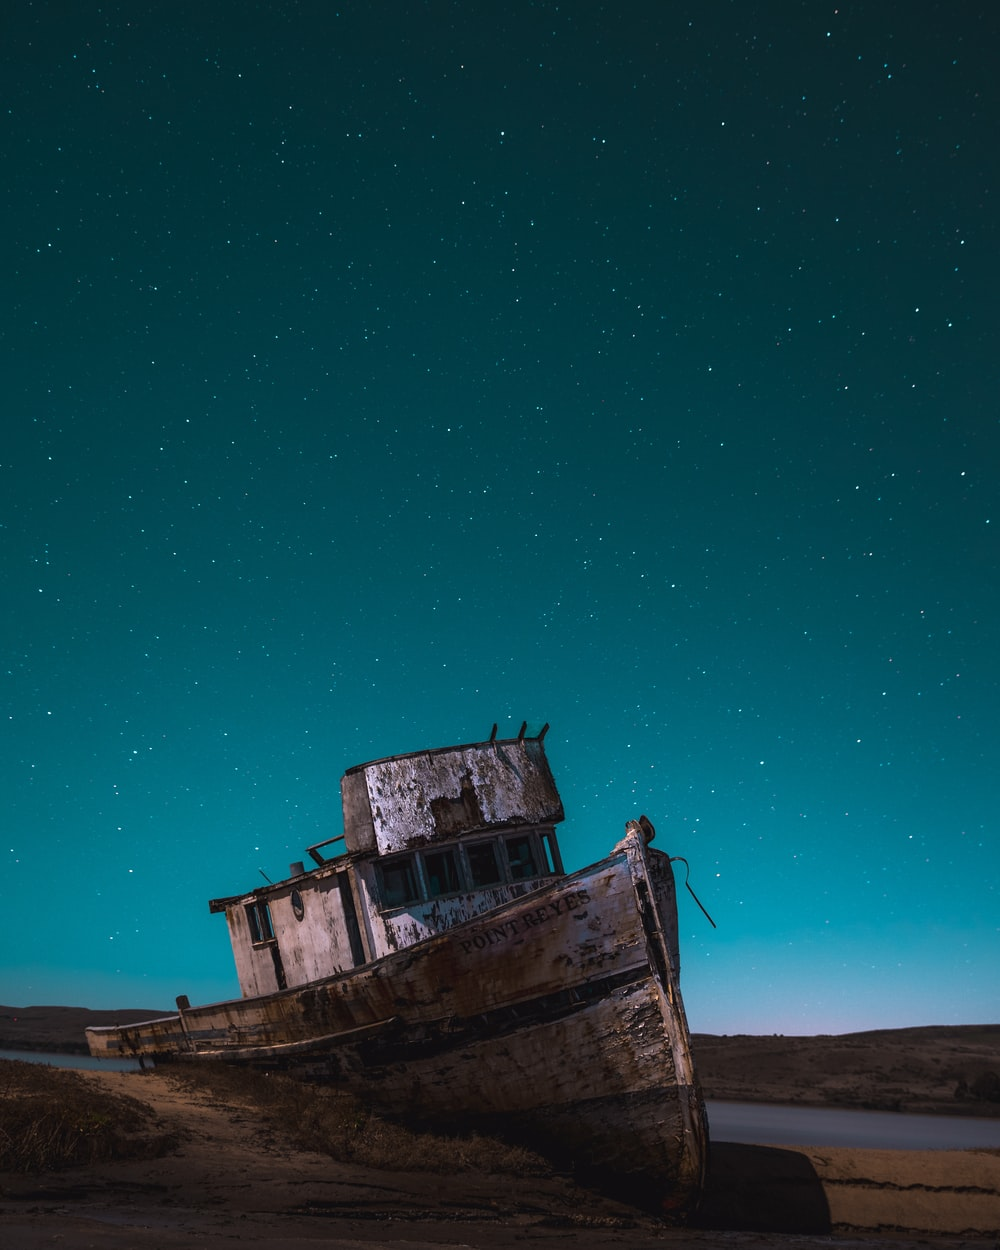 brown shipwrecked on shore